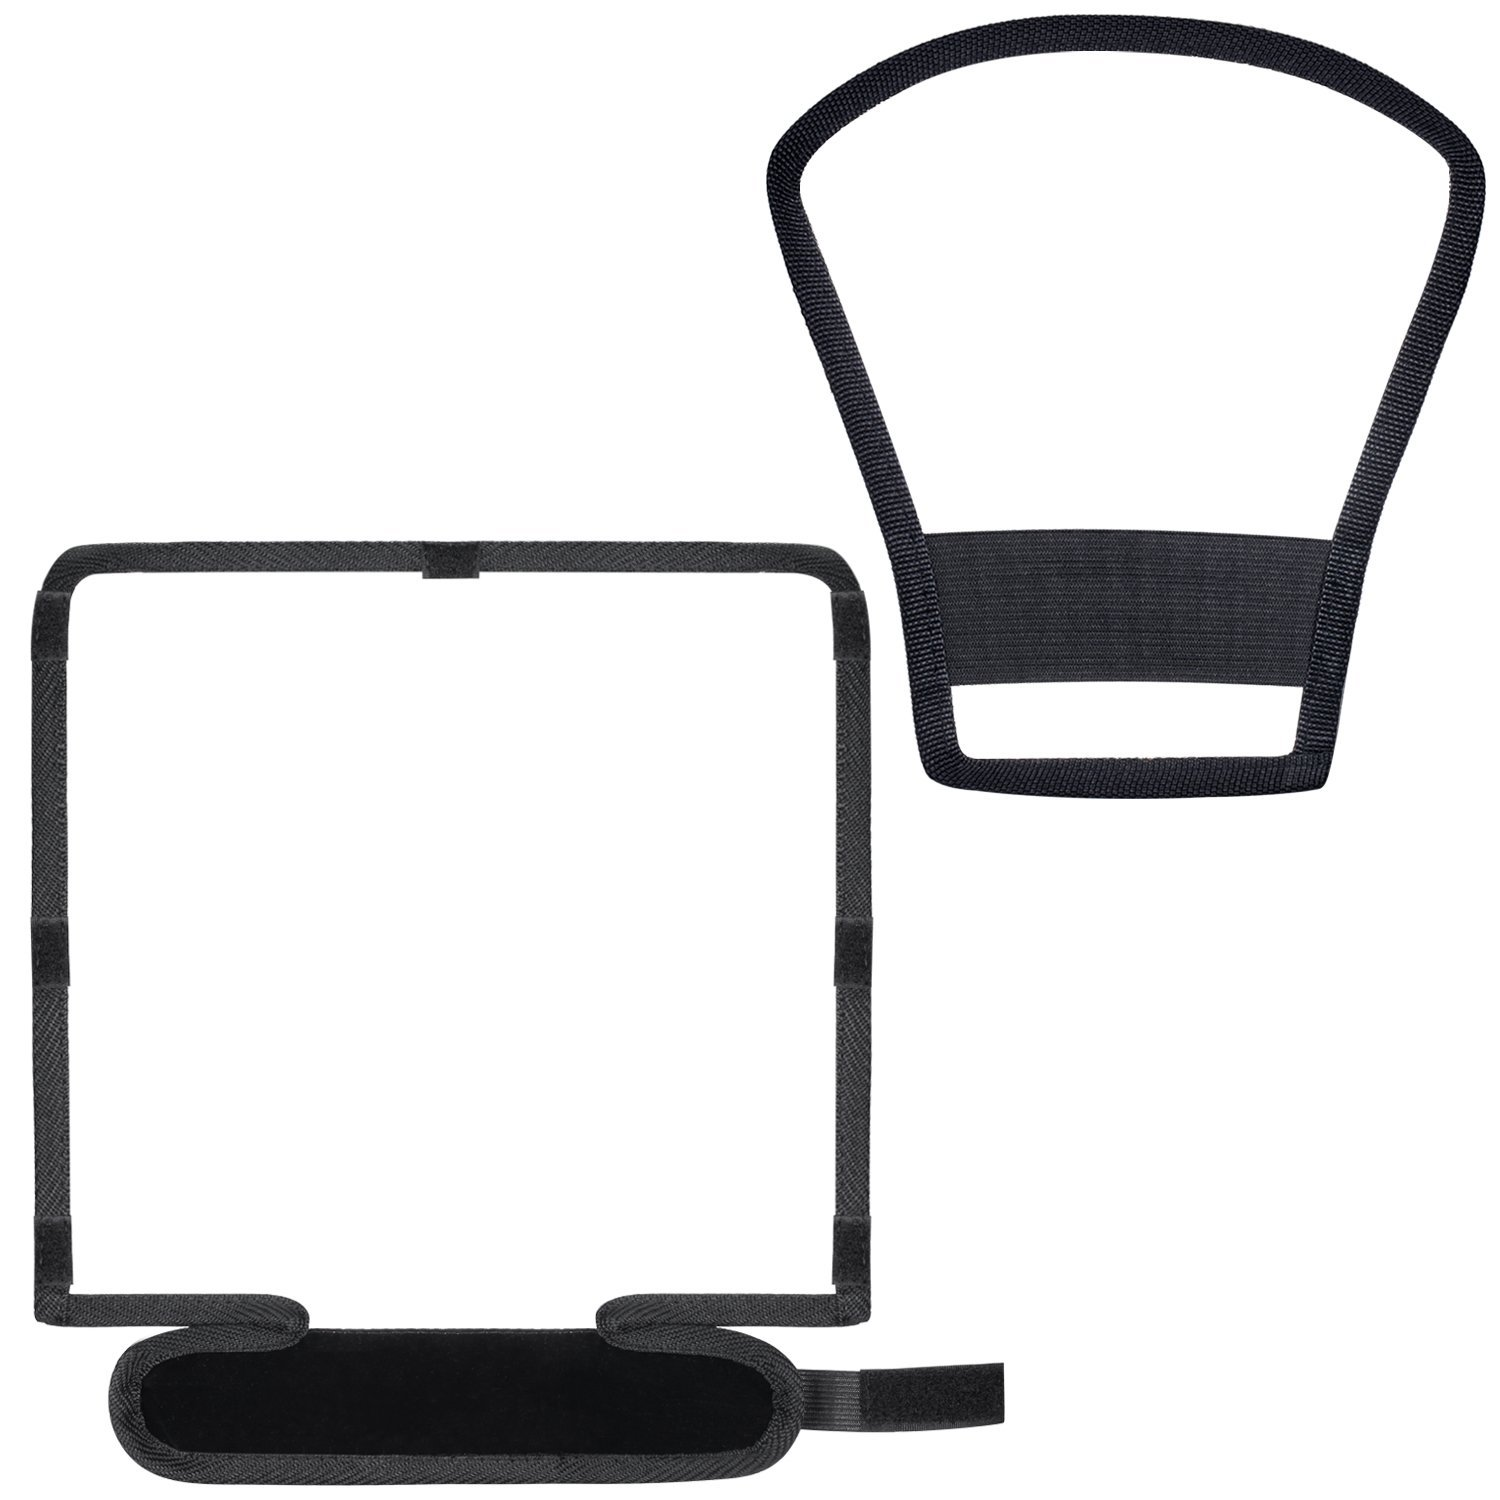 10x9x8inches Bendable White Reflector and 7x8x4 inches Silver//White Two-Side Reflector Neewer 2 Pieces Camera Speedlite Flash Softbox Diffuser Kit Universal Mount for Nikon Canon Sony